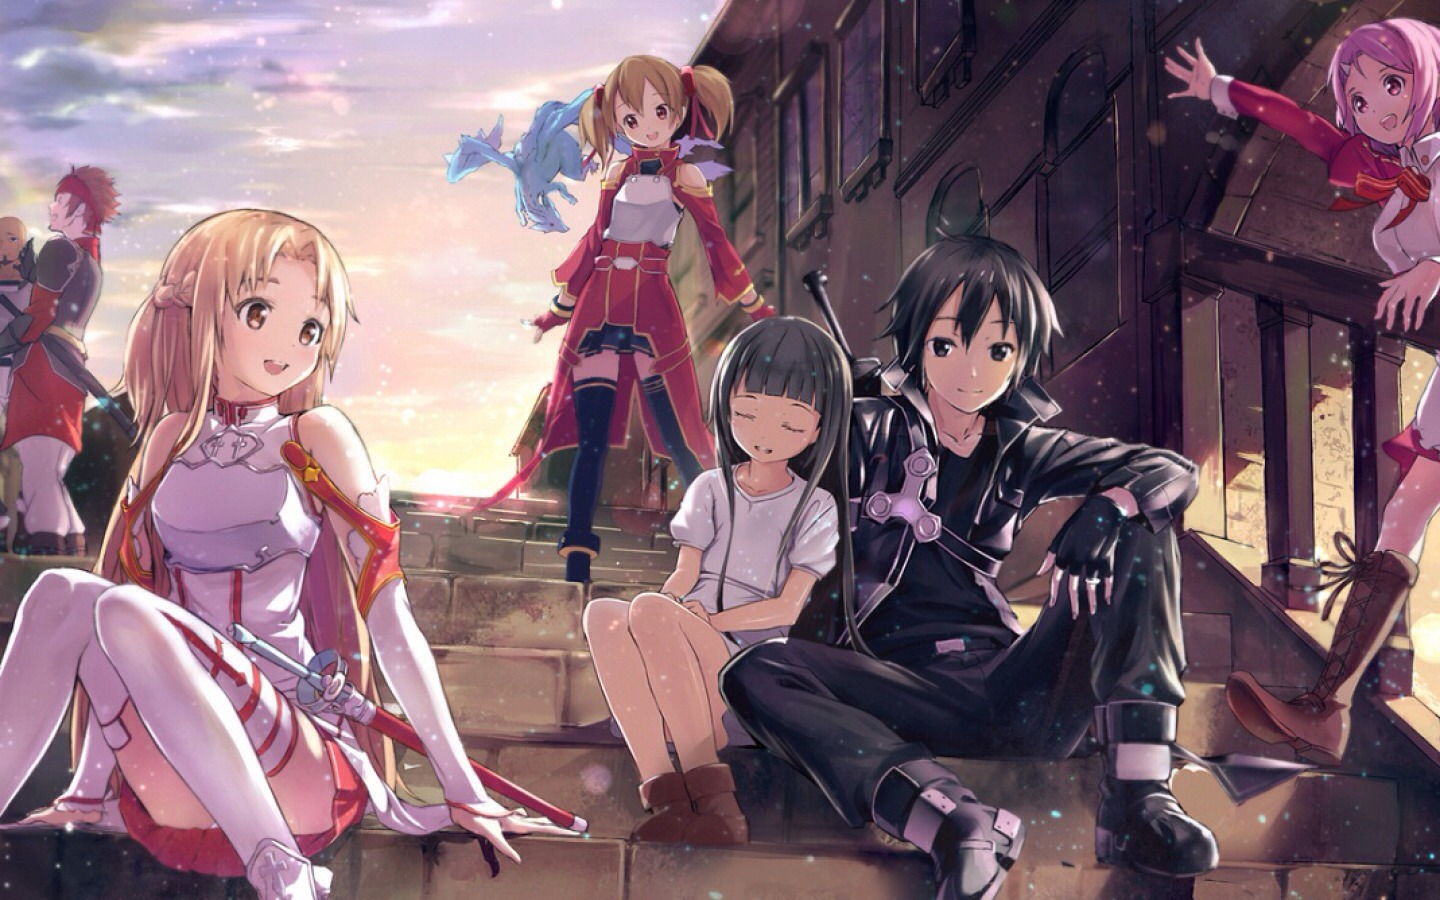 Sword Art-Online has a really interesting plot it's funny, sad and romantic at times. The English dubbed voices aren't annoying which is great.